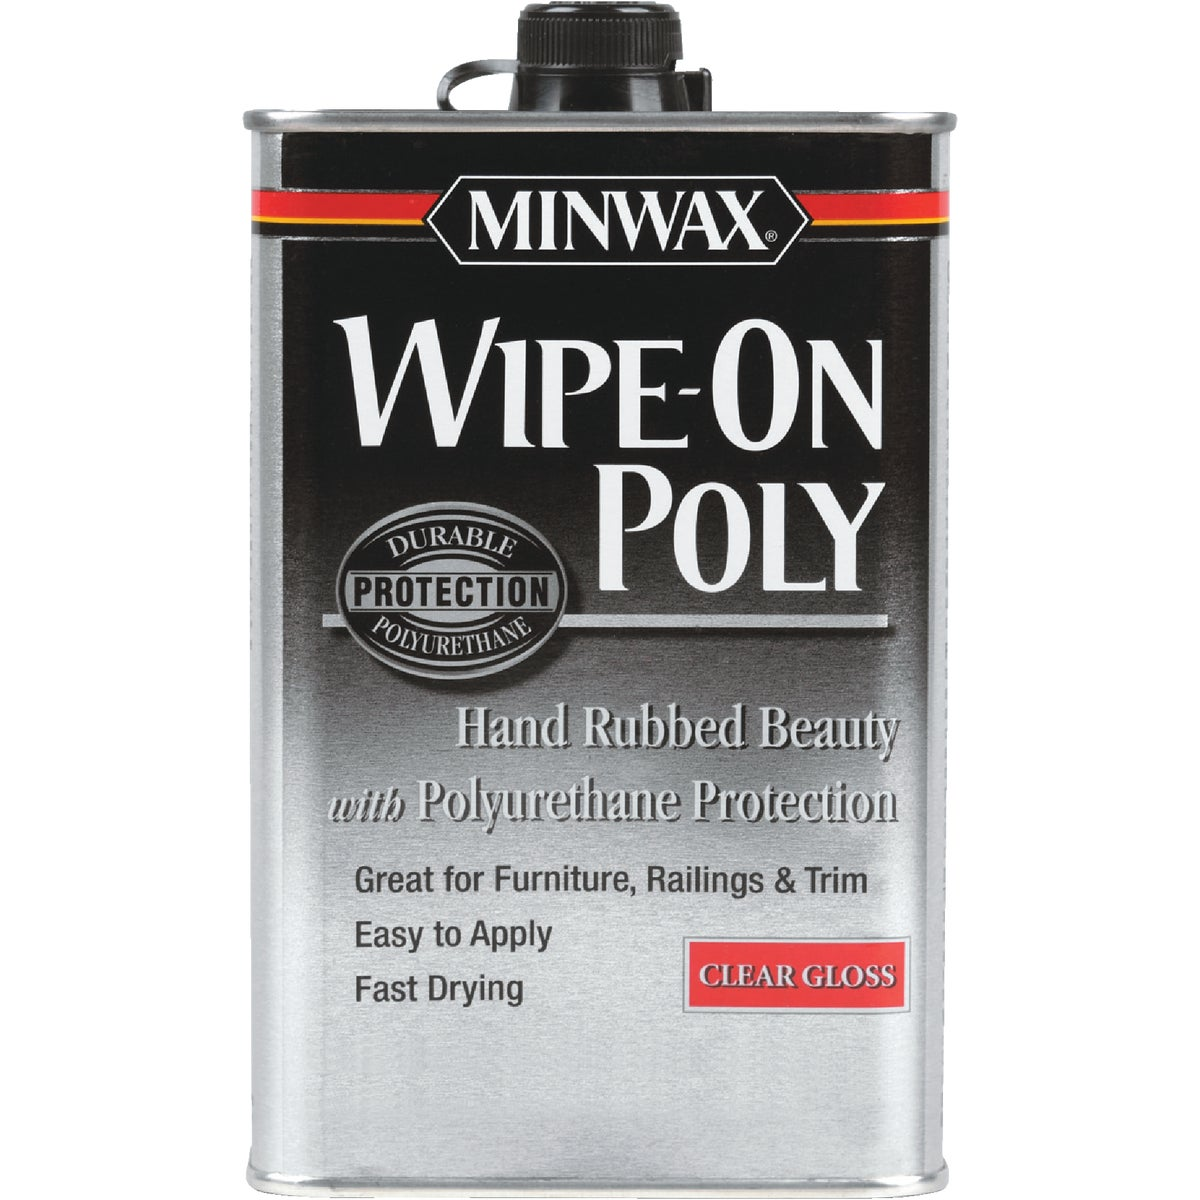 GLS WIPE-ON POLYURETHANE - 60900 by Minwax Company